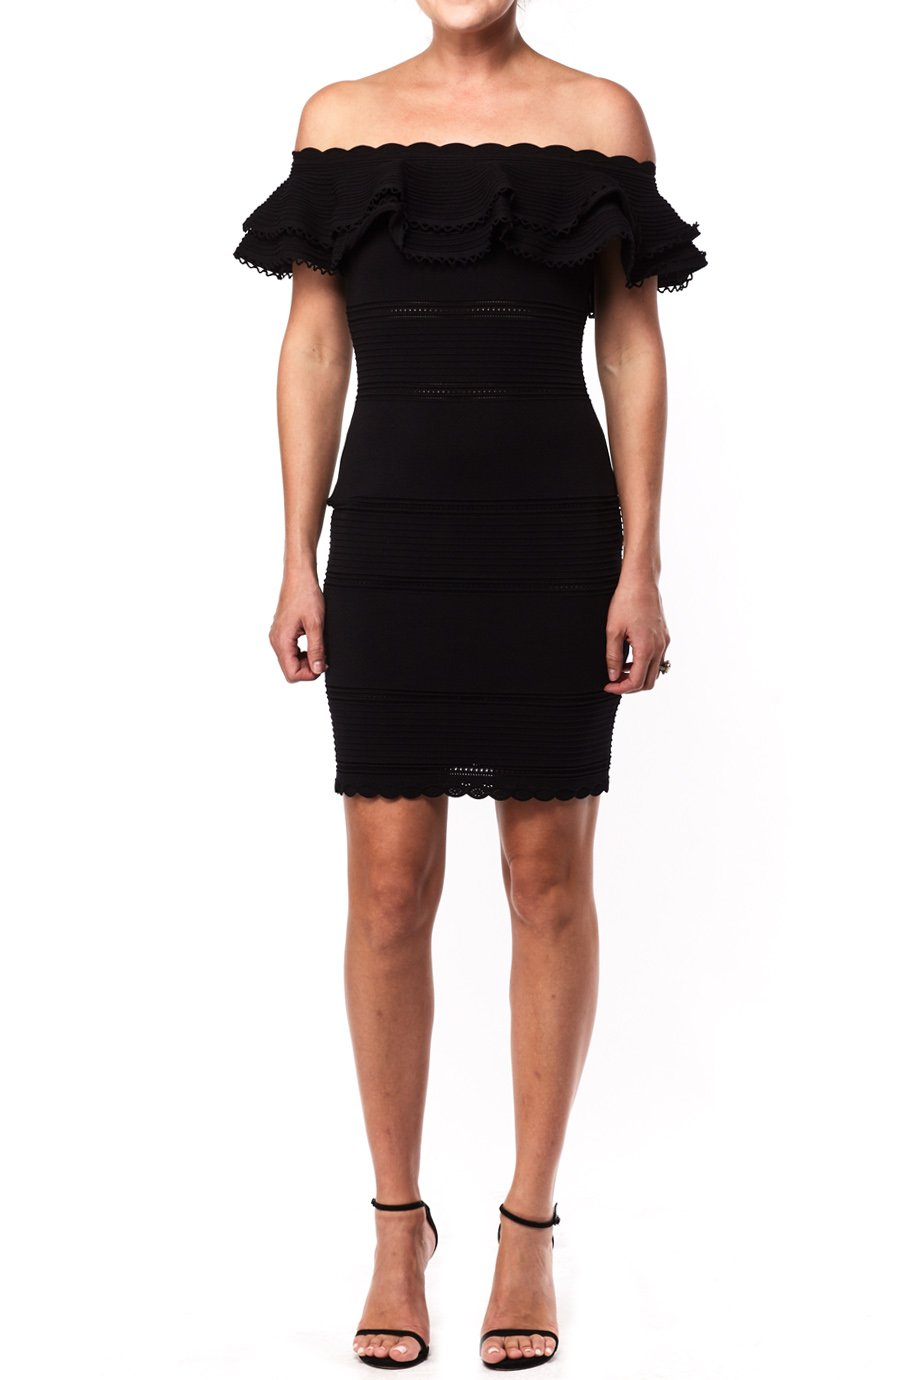 Alexander McQueen Black Off the Shoulder Fitted Cocktail Dress